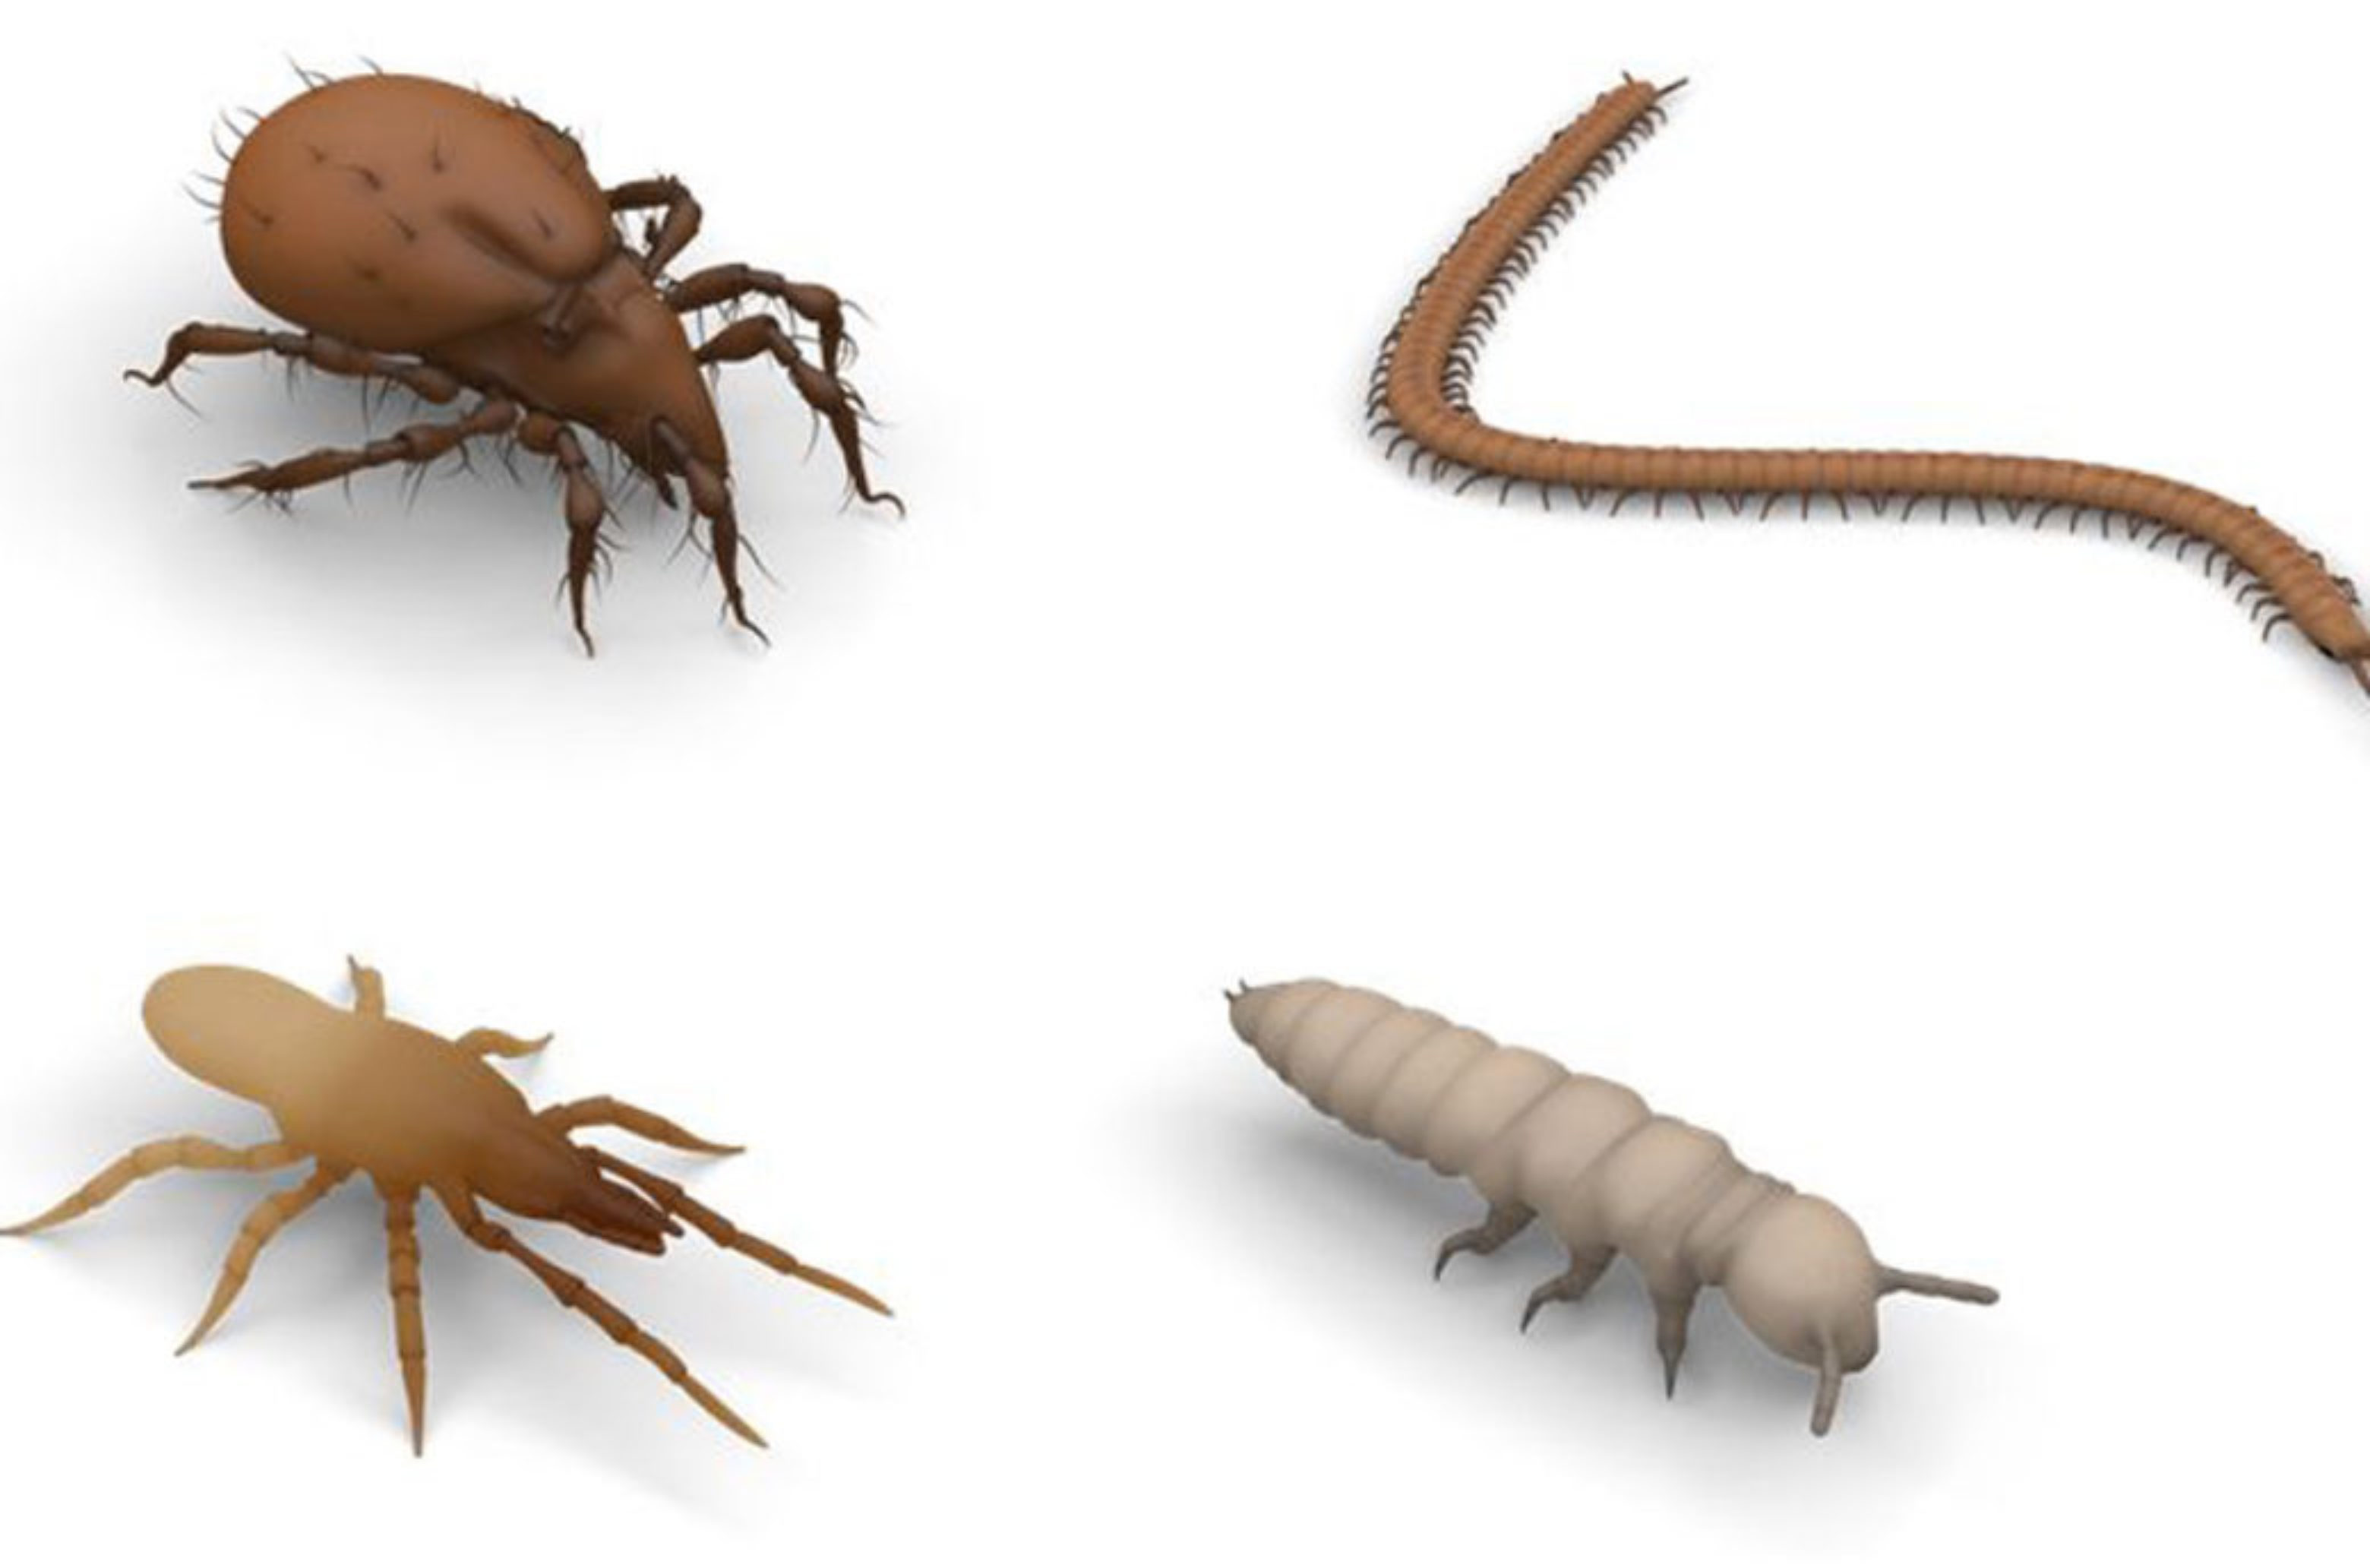 For the VR application, soil animals were reconstructed in 3D according to scientific specifications.